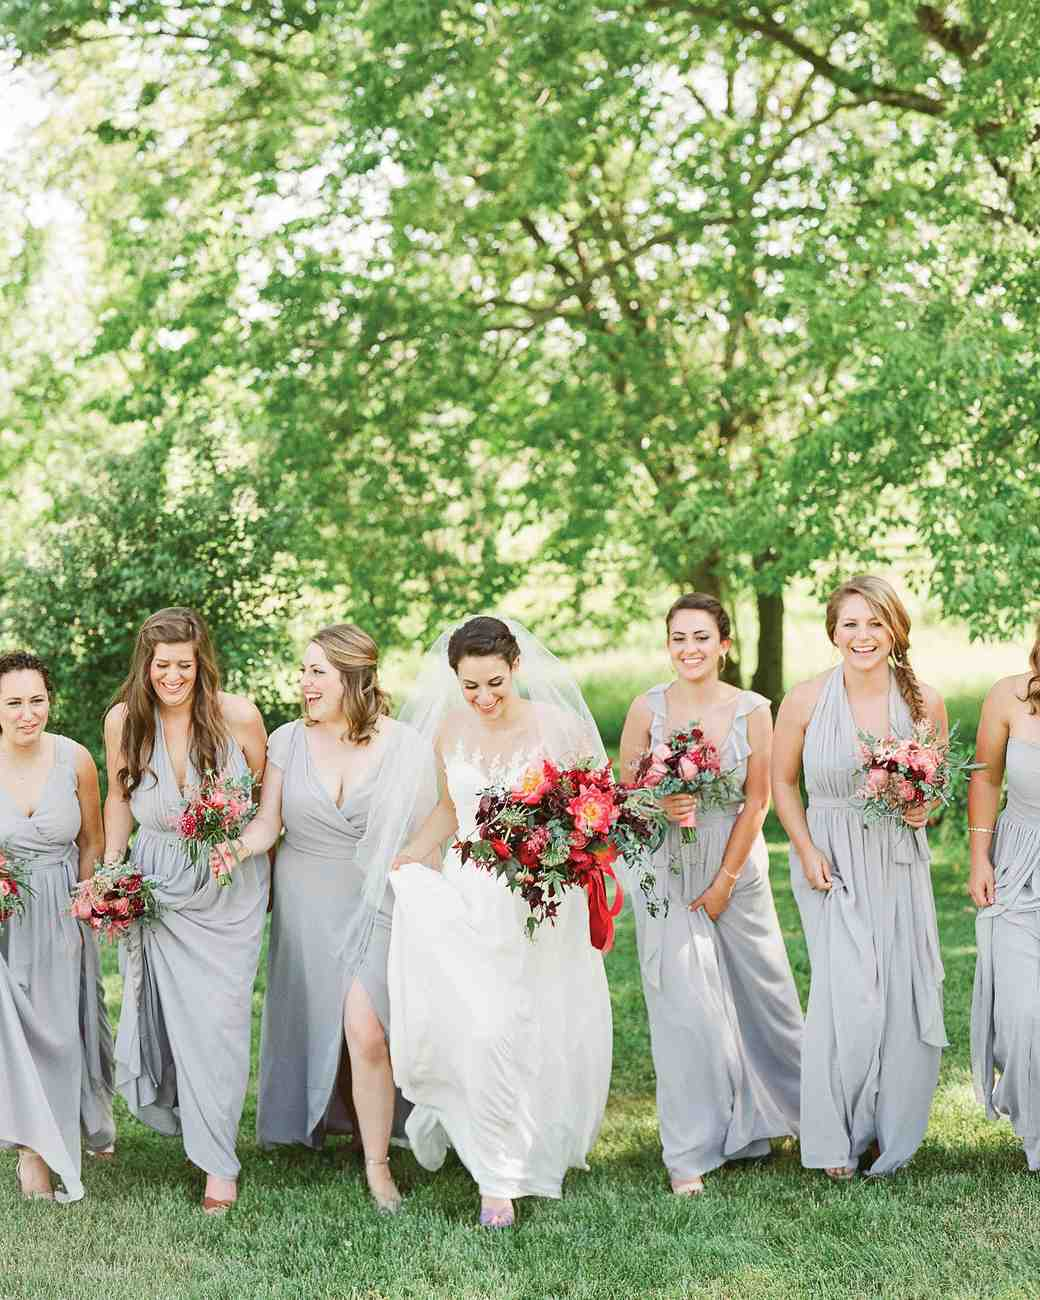 sasha-tyler-wedding-virginia-bridesmaids-brides-21-s112867.jpg